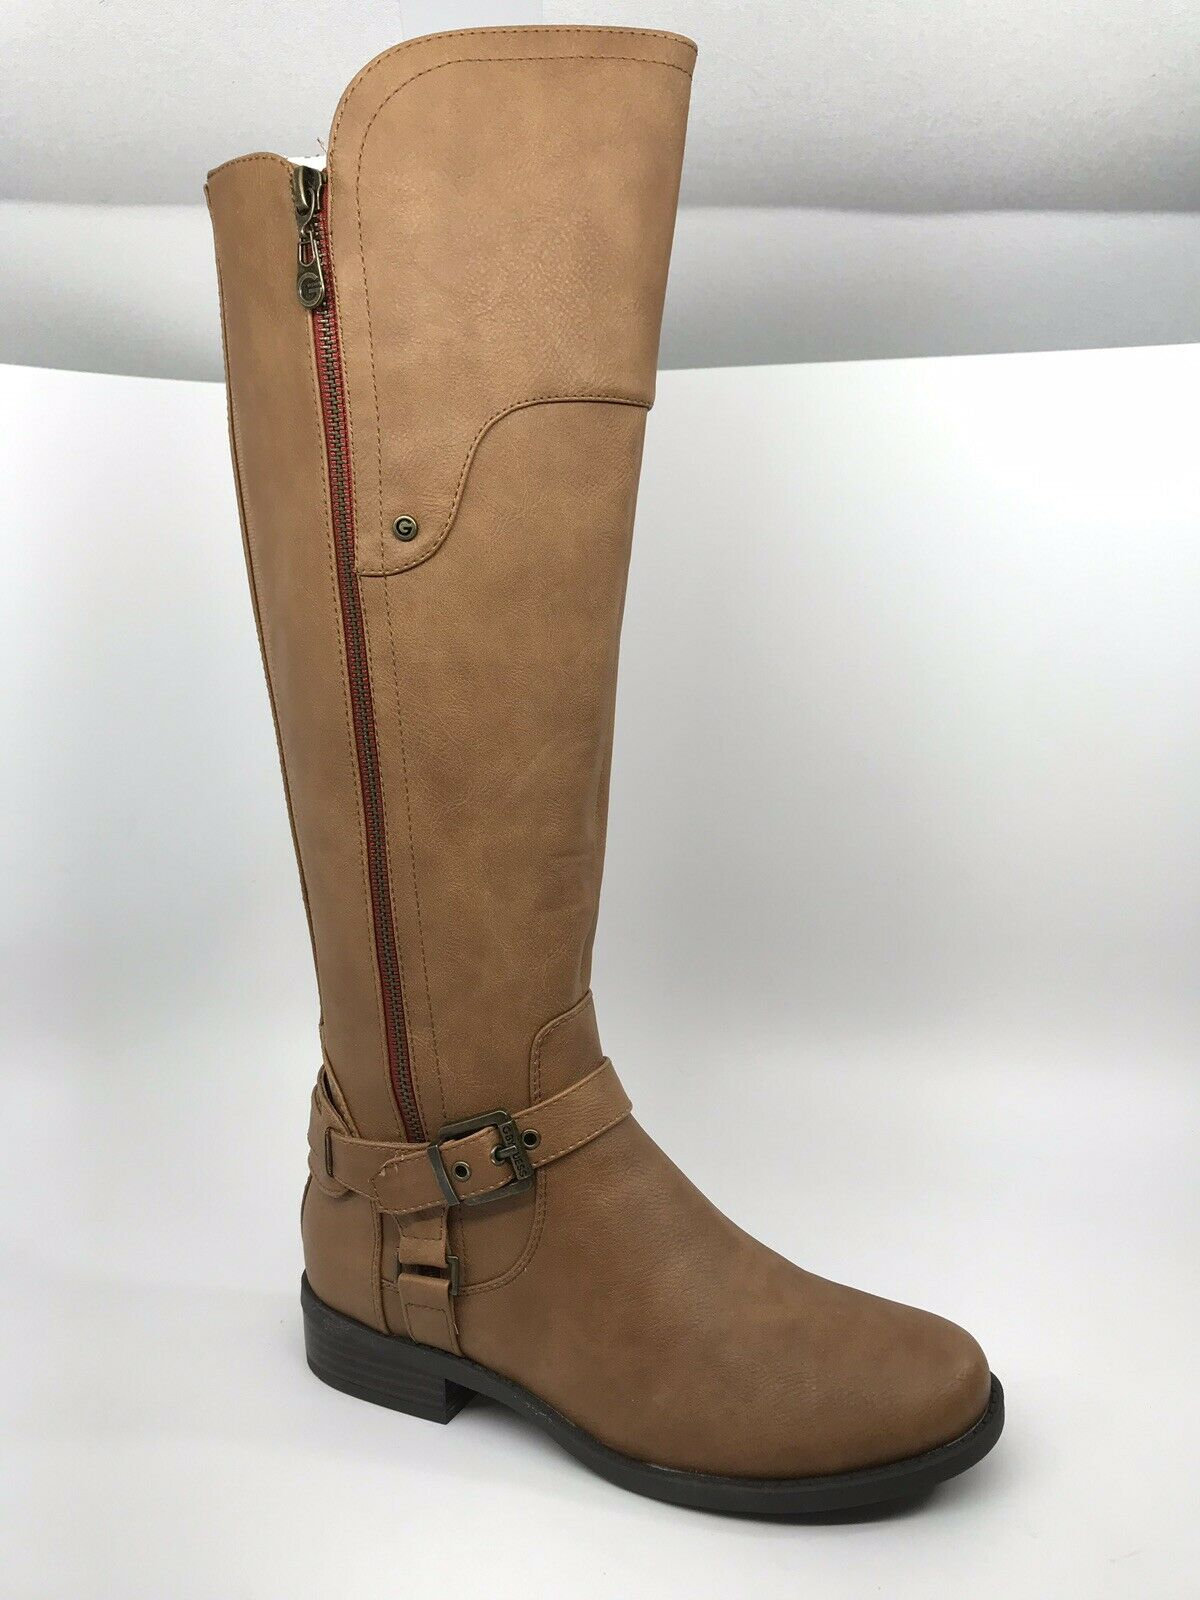 G by GUESS Harson Tall Riding Boots Womens Size 7 M Light Brown NEW